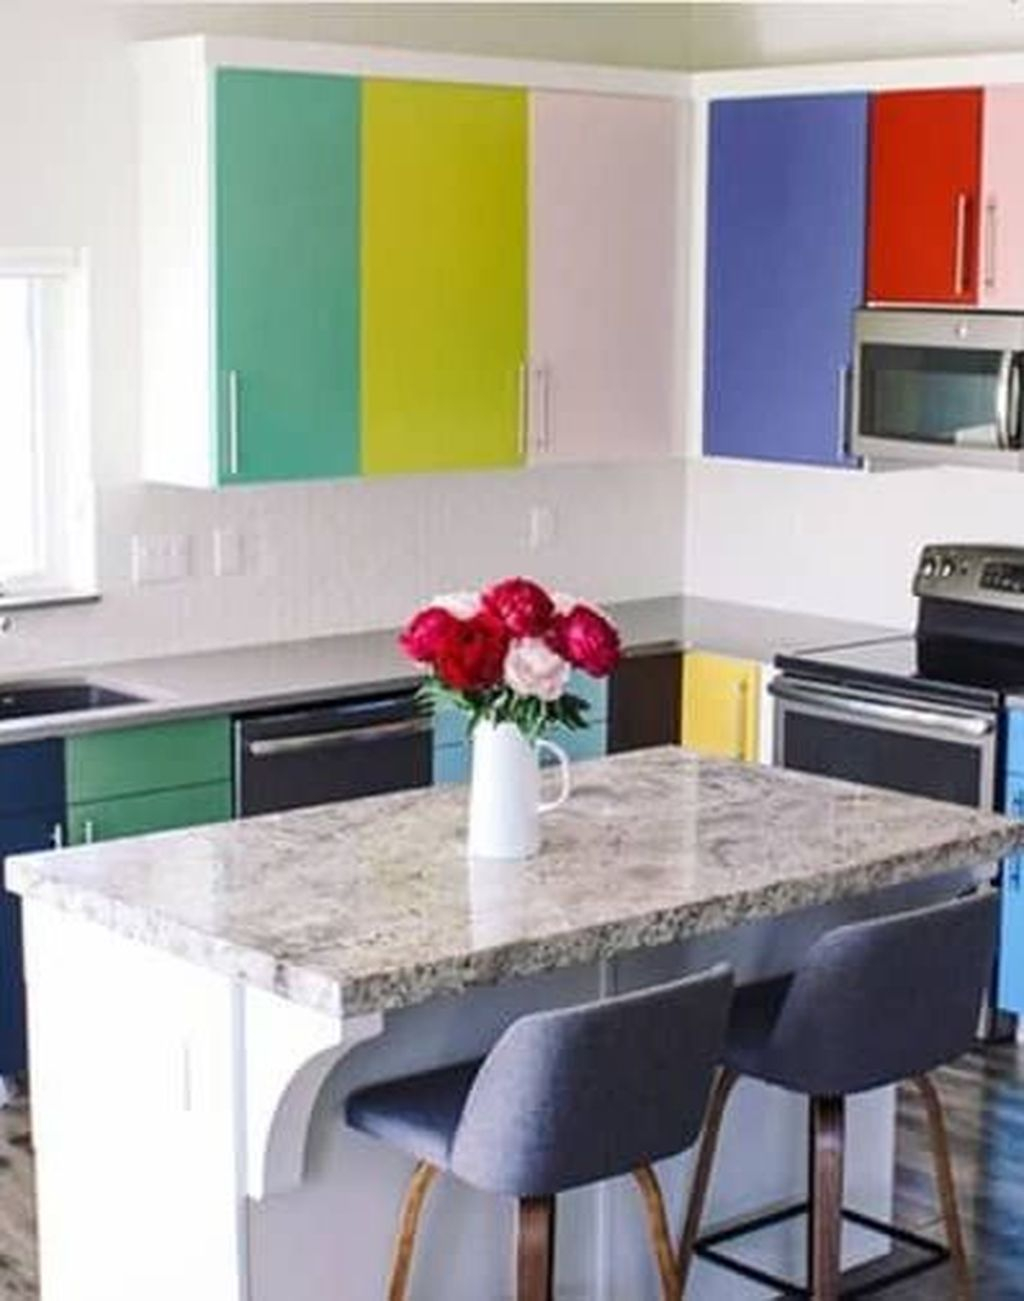 Adorable Rainbow Colorful Kitchens Design Ideas To Looks More Awesome 38